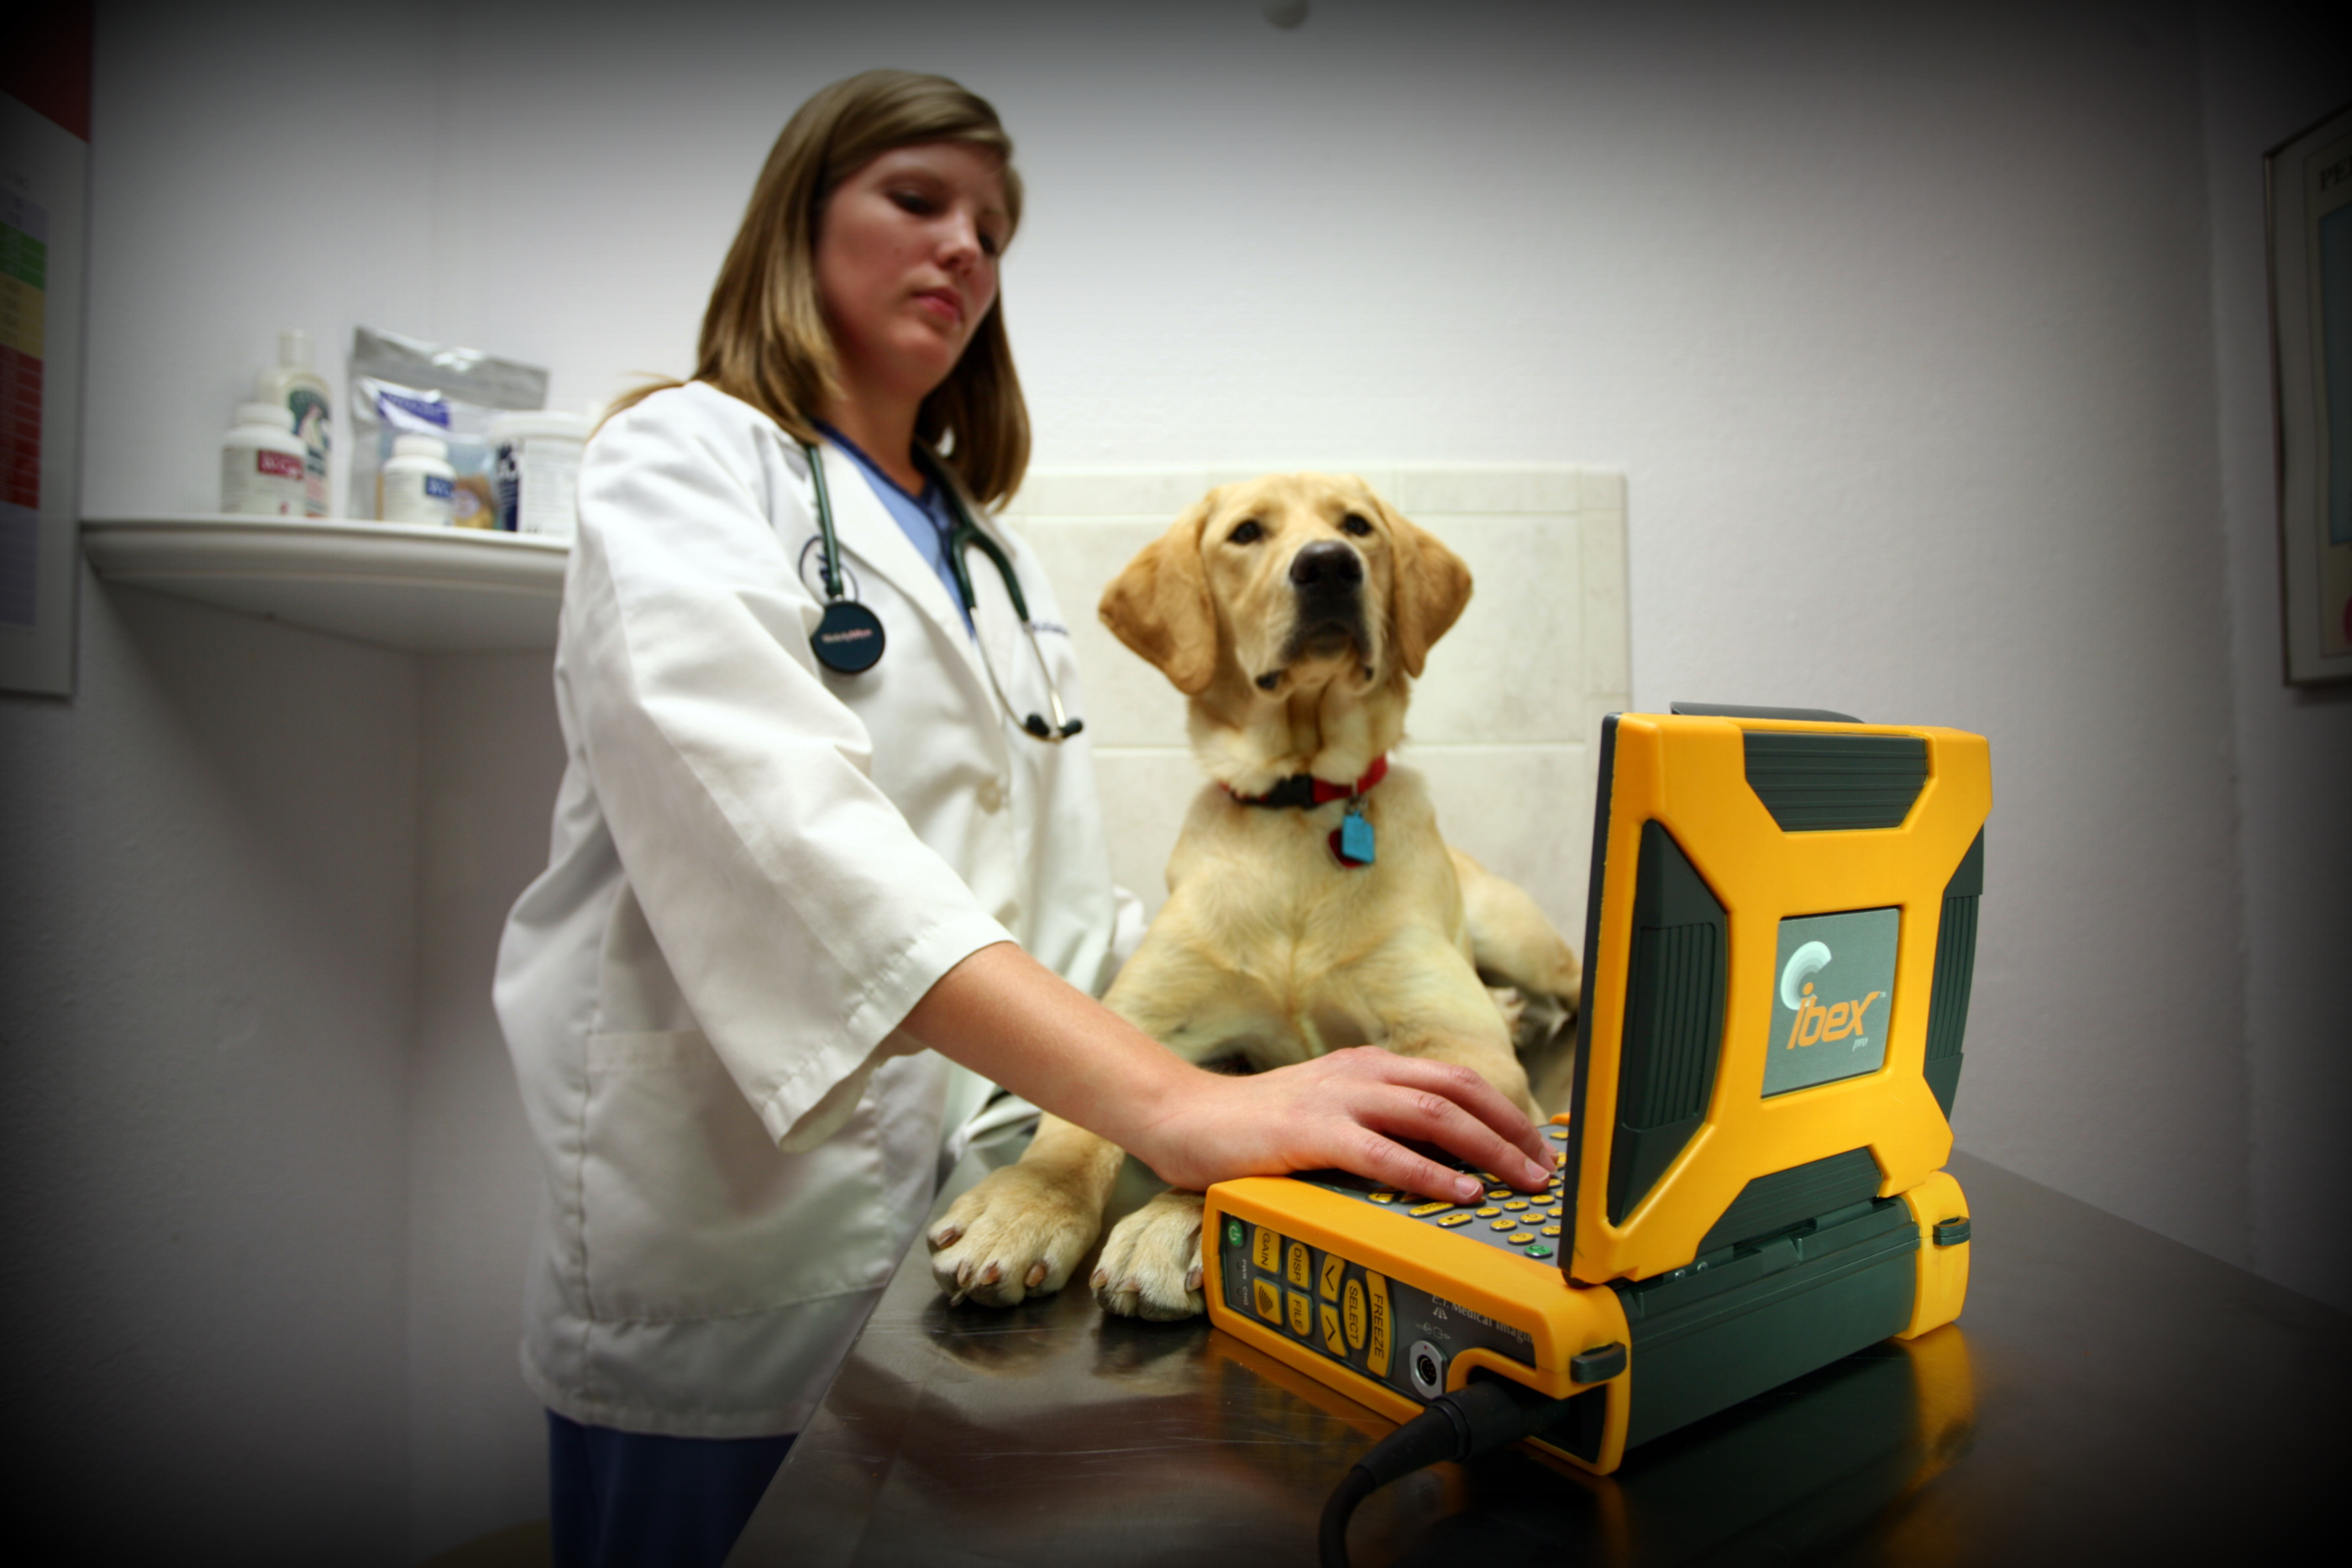 veterinarian communication, veterinary ultrasound, cow ultrasound, waterproof ultrasound